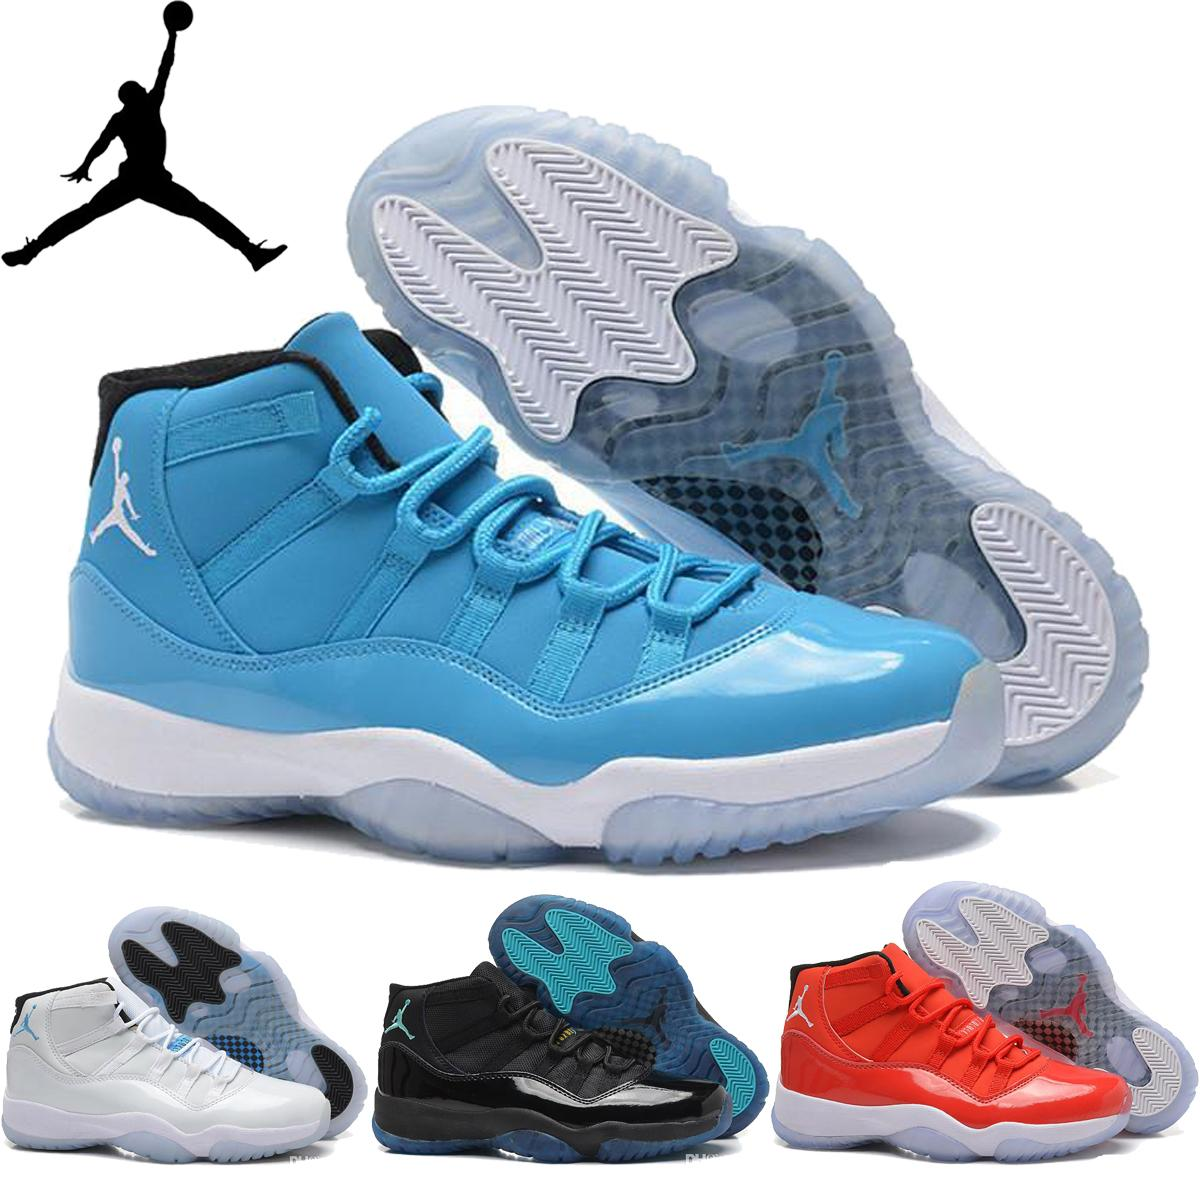 separation shoes fc599 d8842 ... where to buy acheter nike air jordan 11 retro xi chaussures hommes  femmes basket bred concord